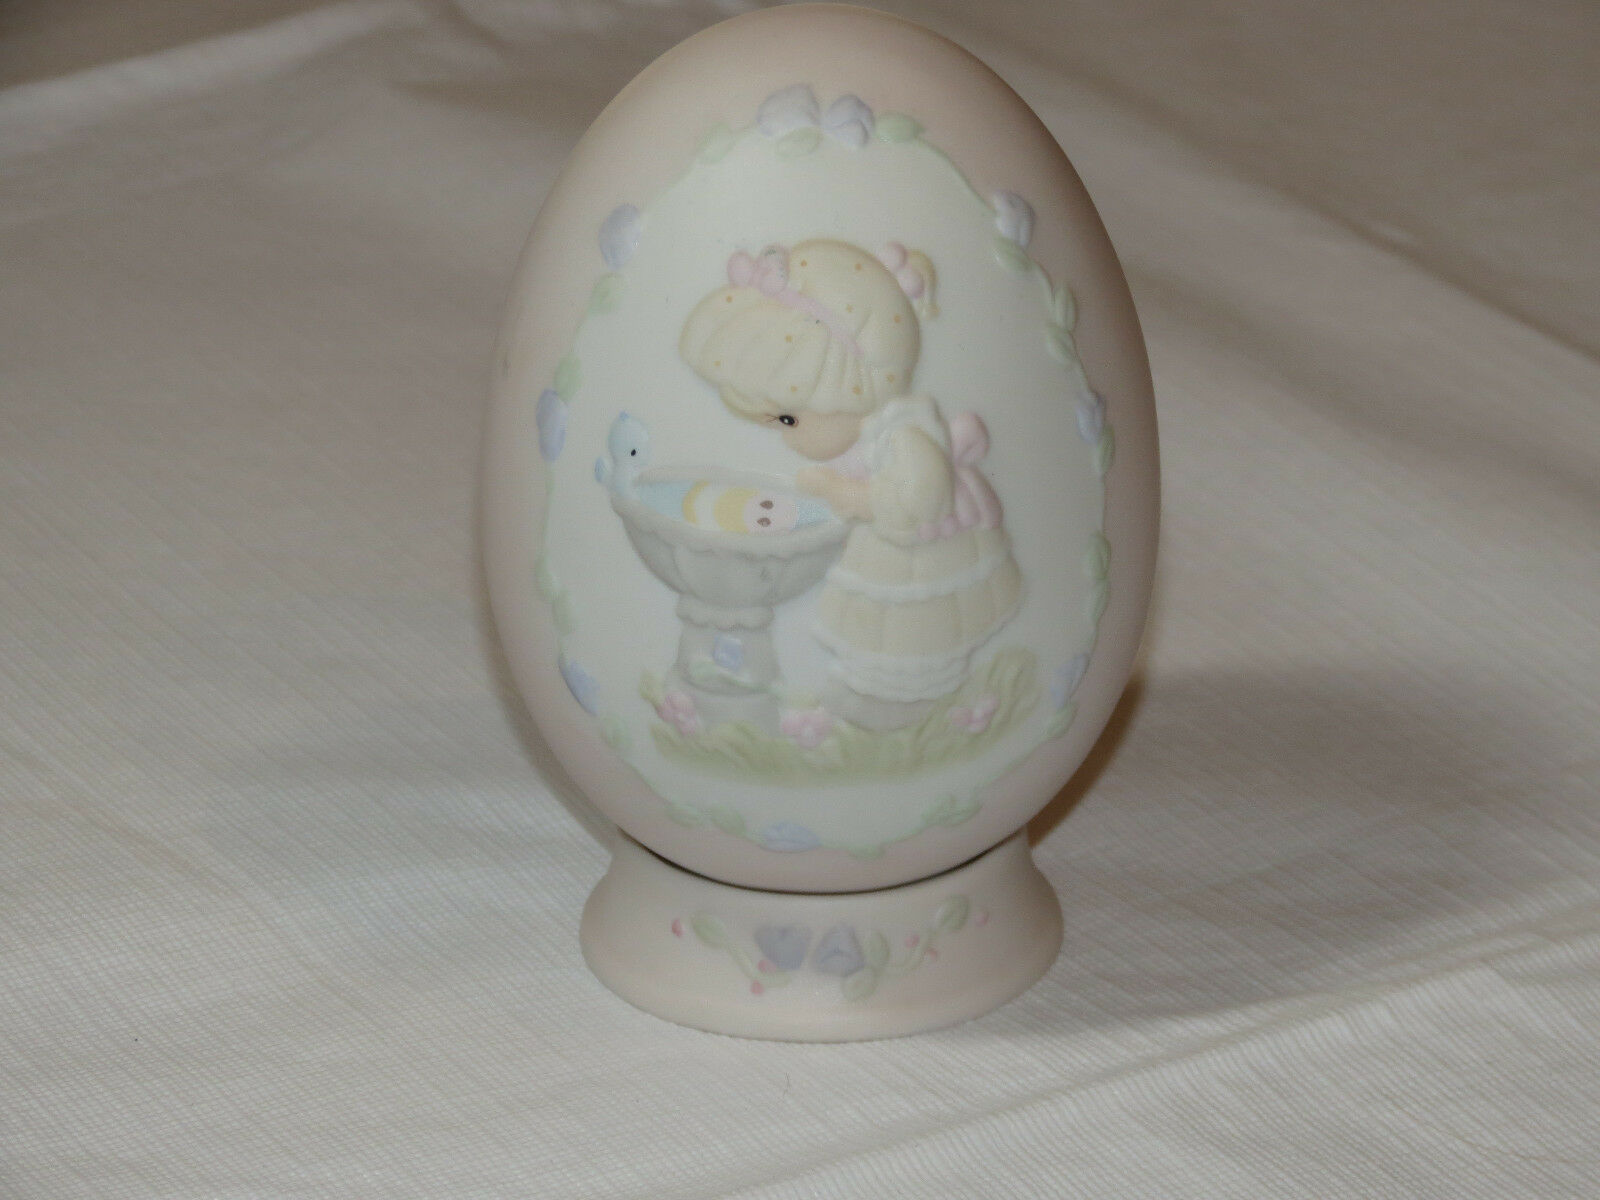 Precious Moments 529095 A Reflection of His Love egg with stand girl birdbath